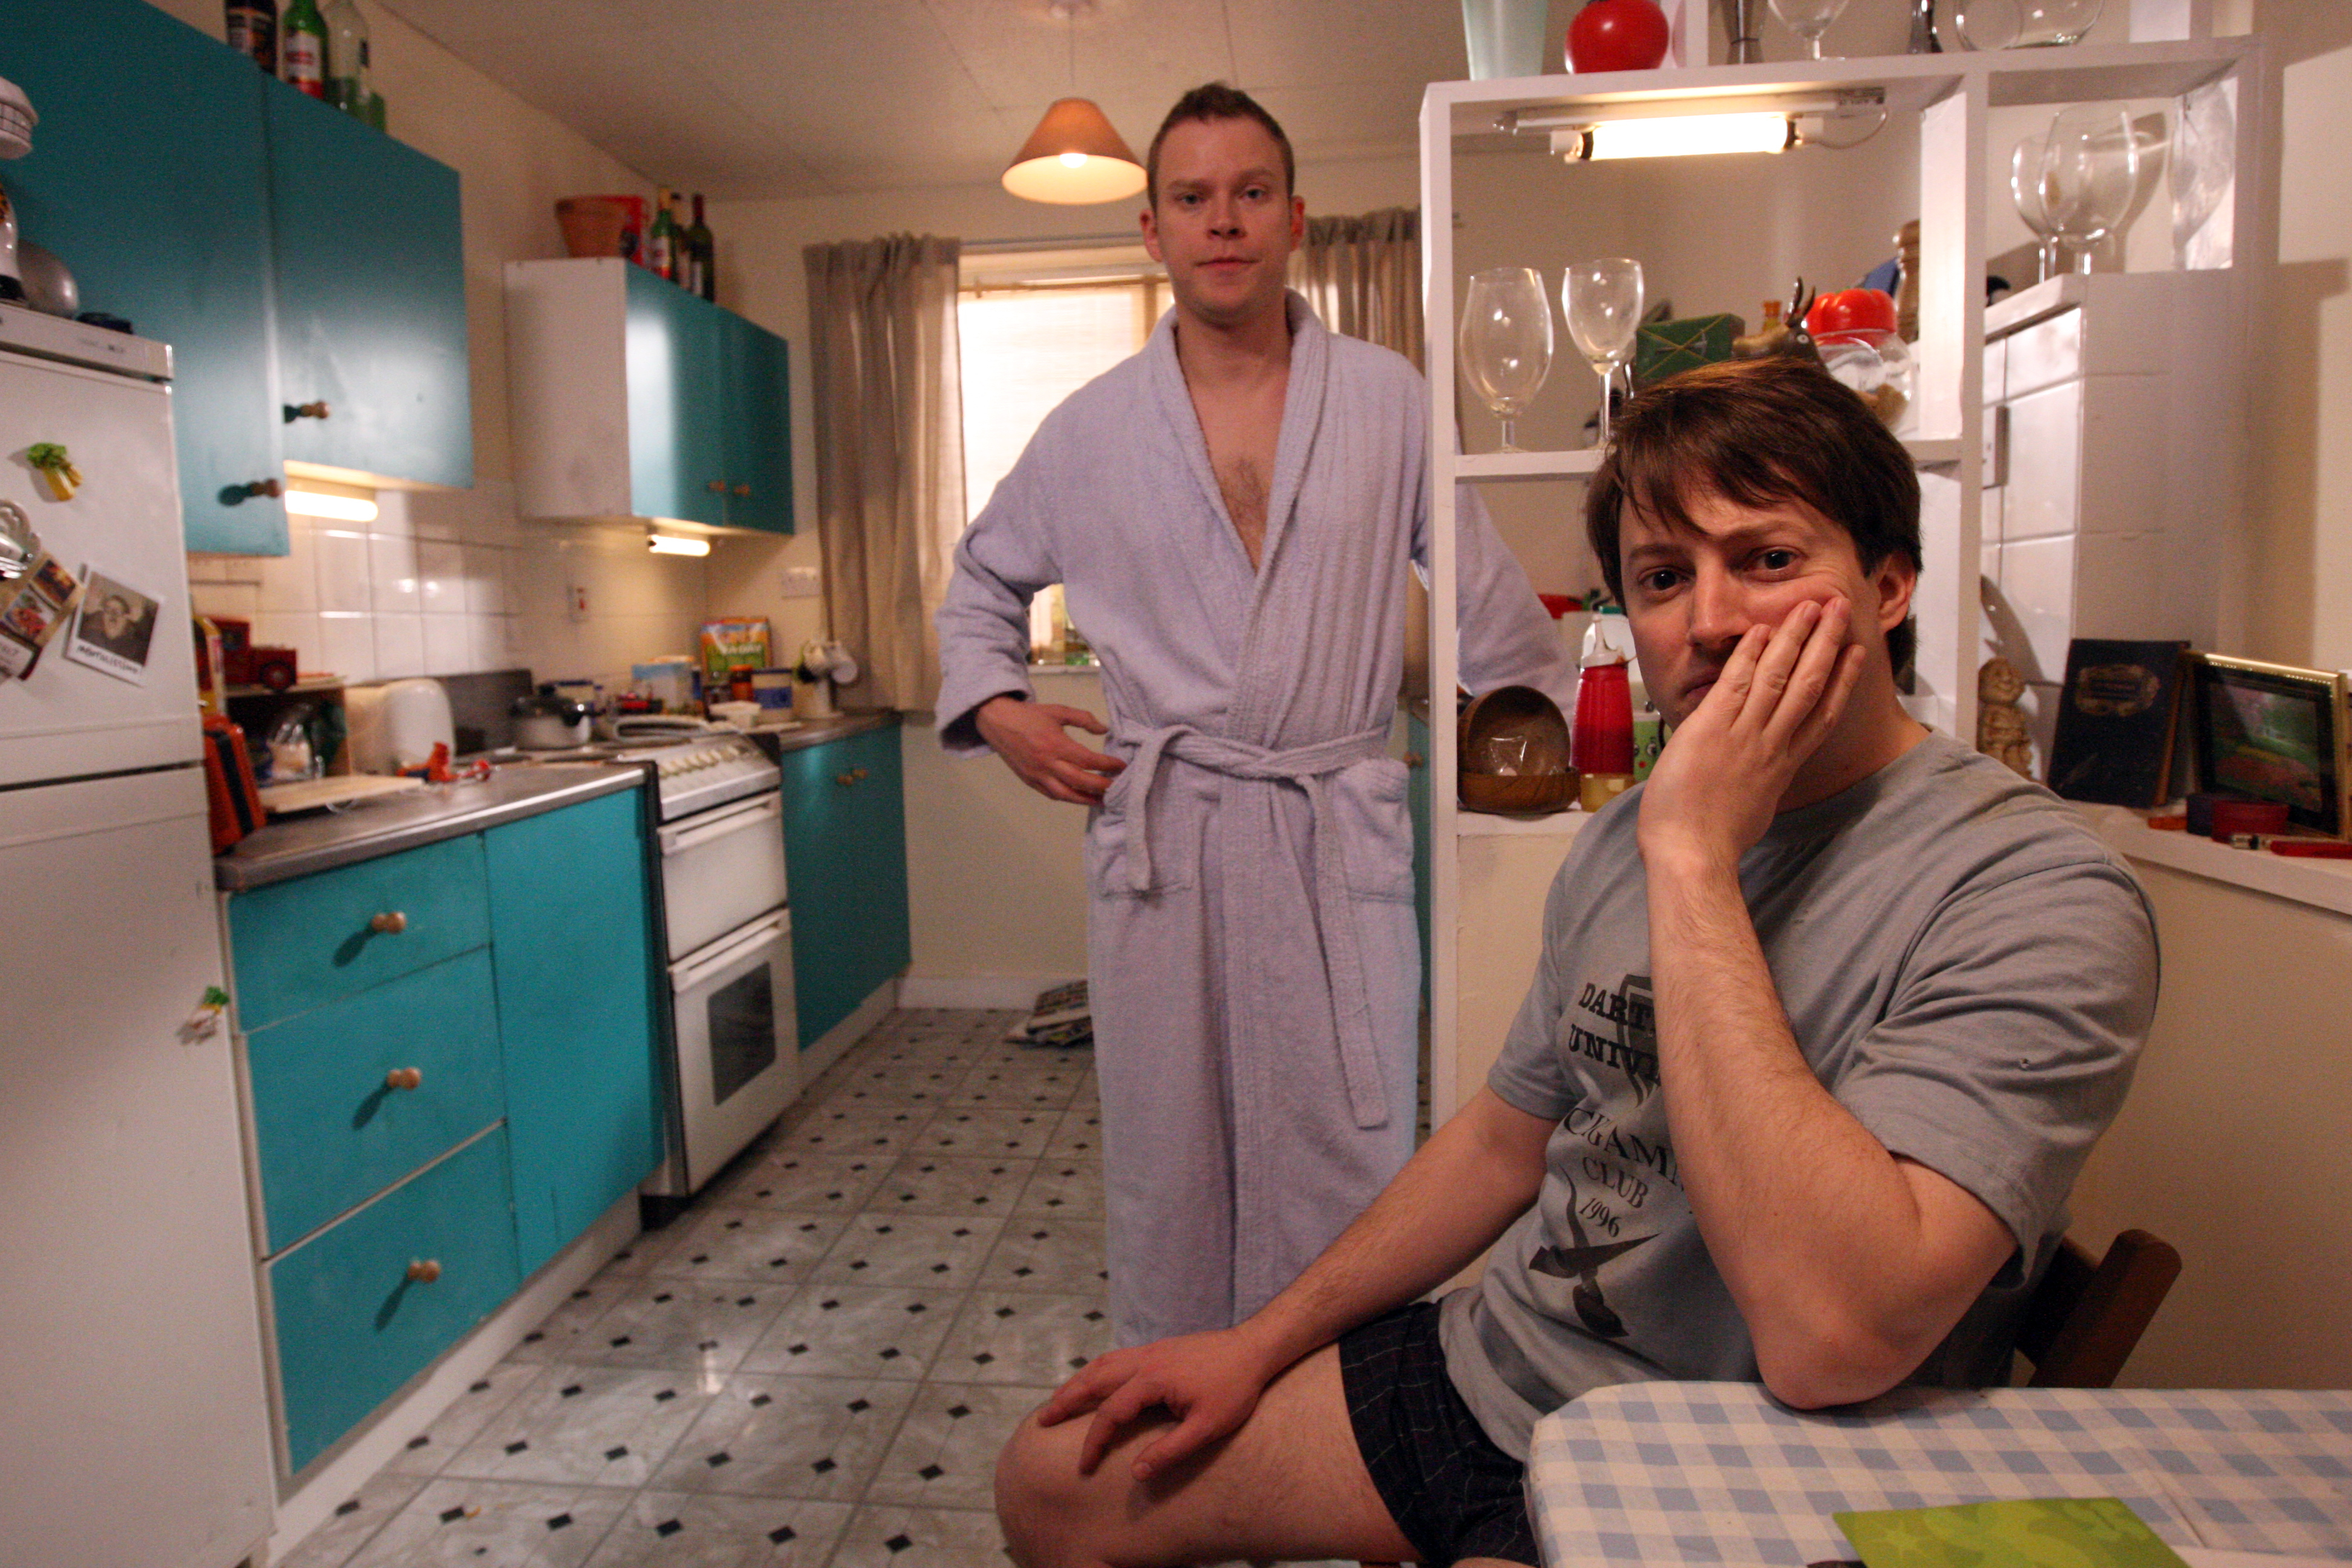 David Mitchell and Robert Webb on set in North London filming the new series of Peep Show